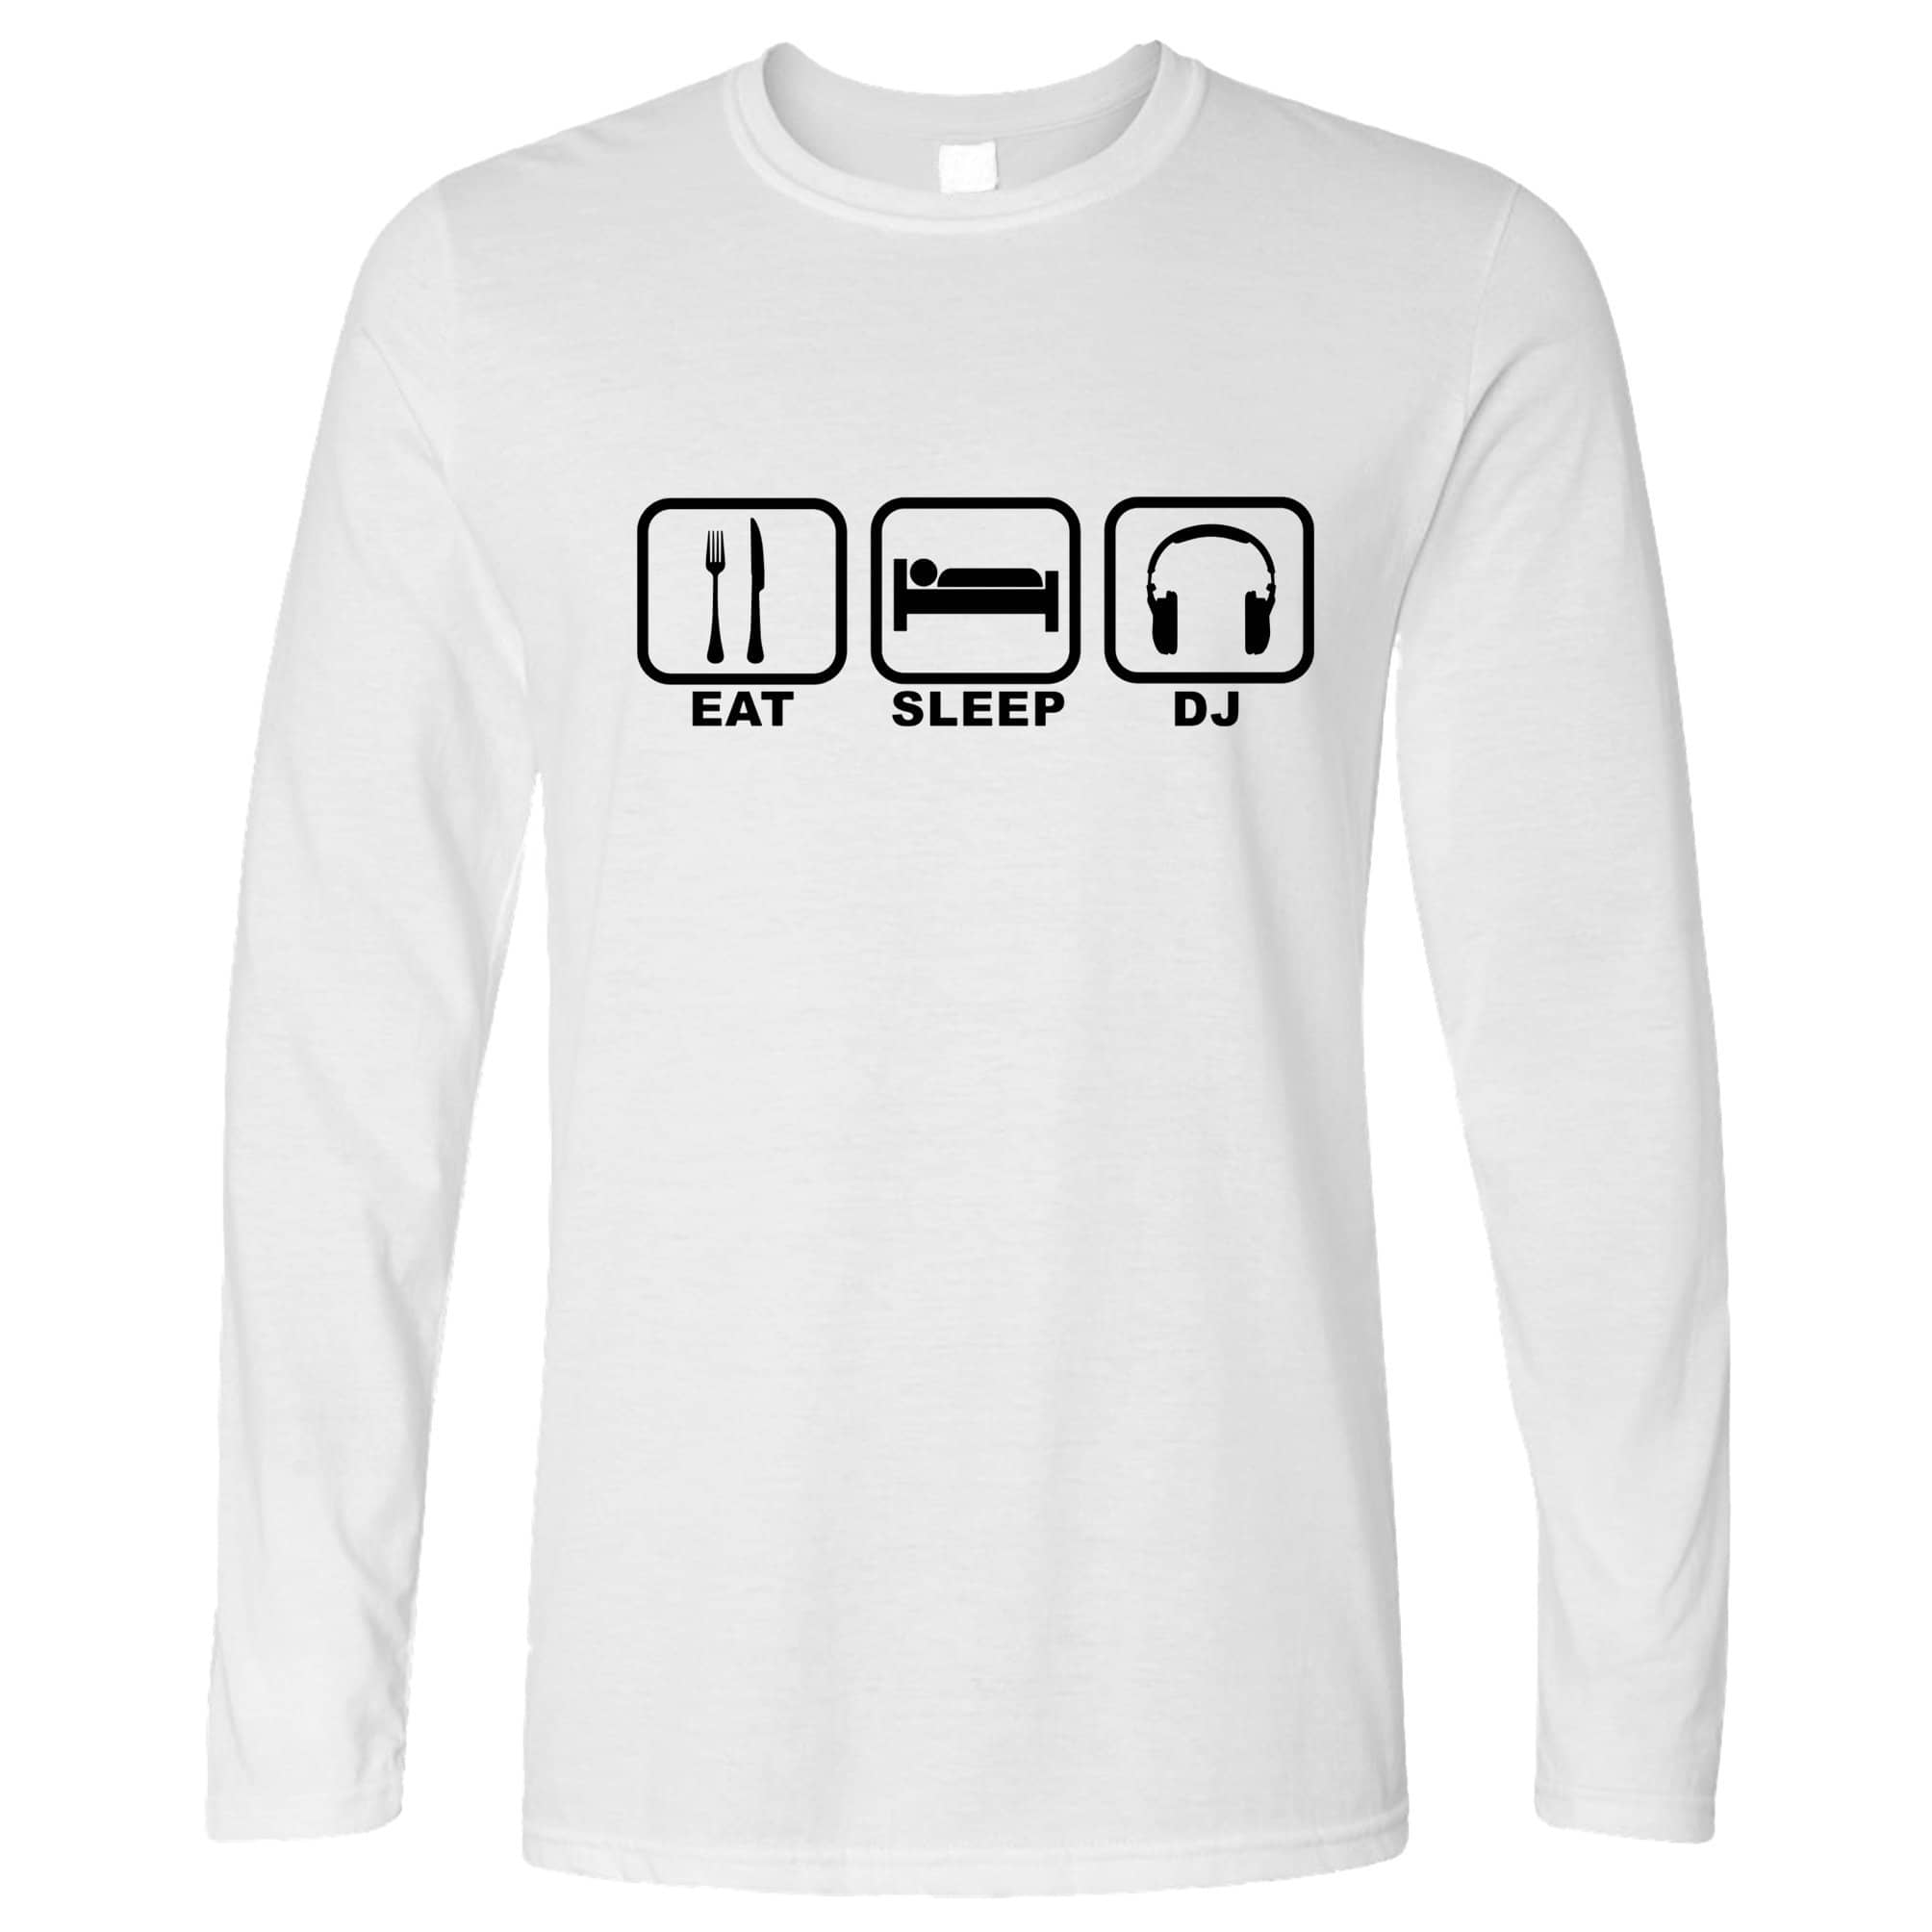 Novelty Long Sleeve Eat, Sleep, Then DJ Symbols T-Shirt